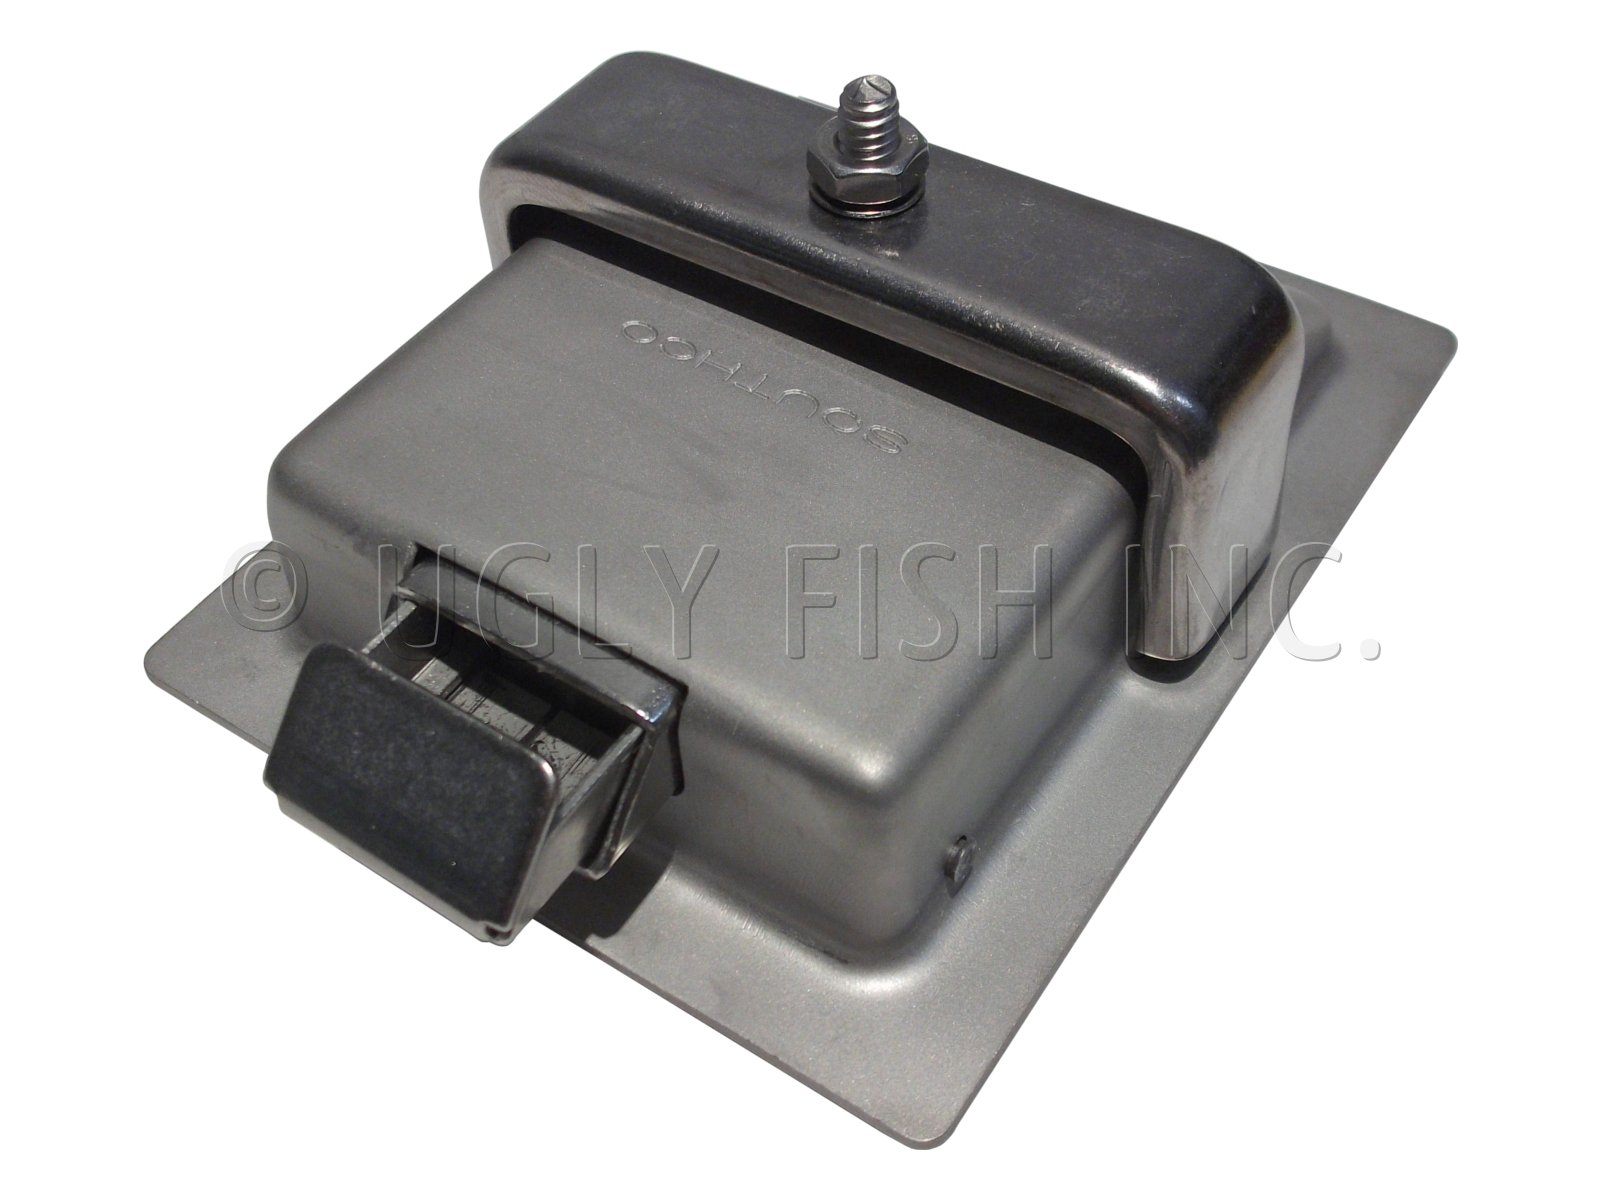 64 10 302 50 Southco Paddle Latch